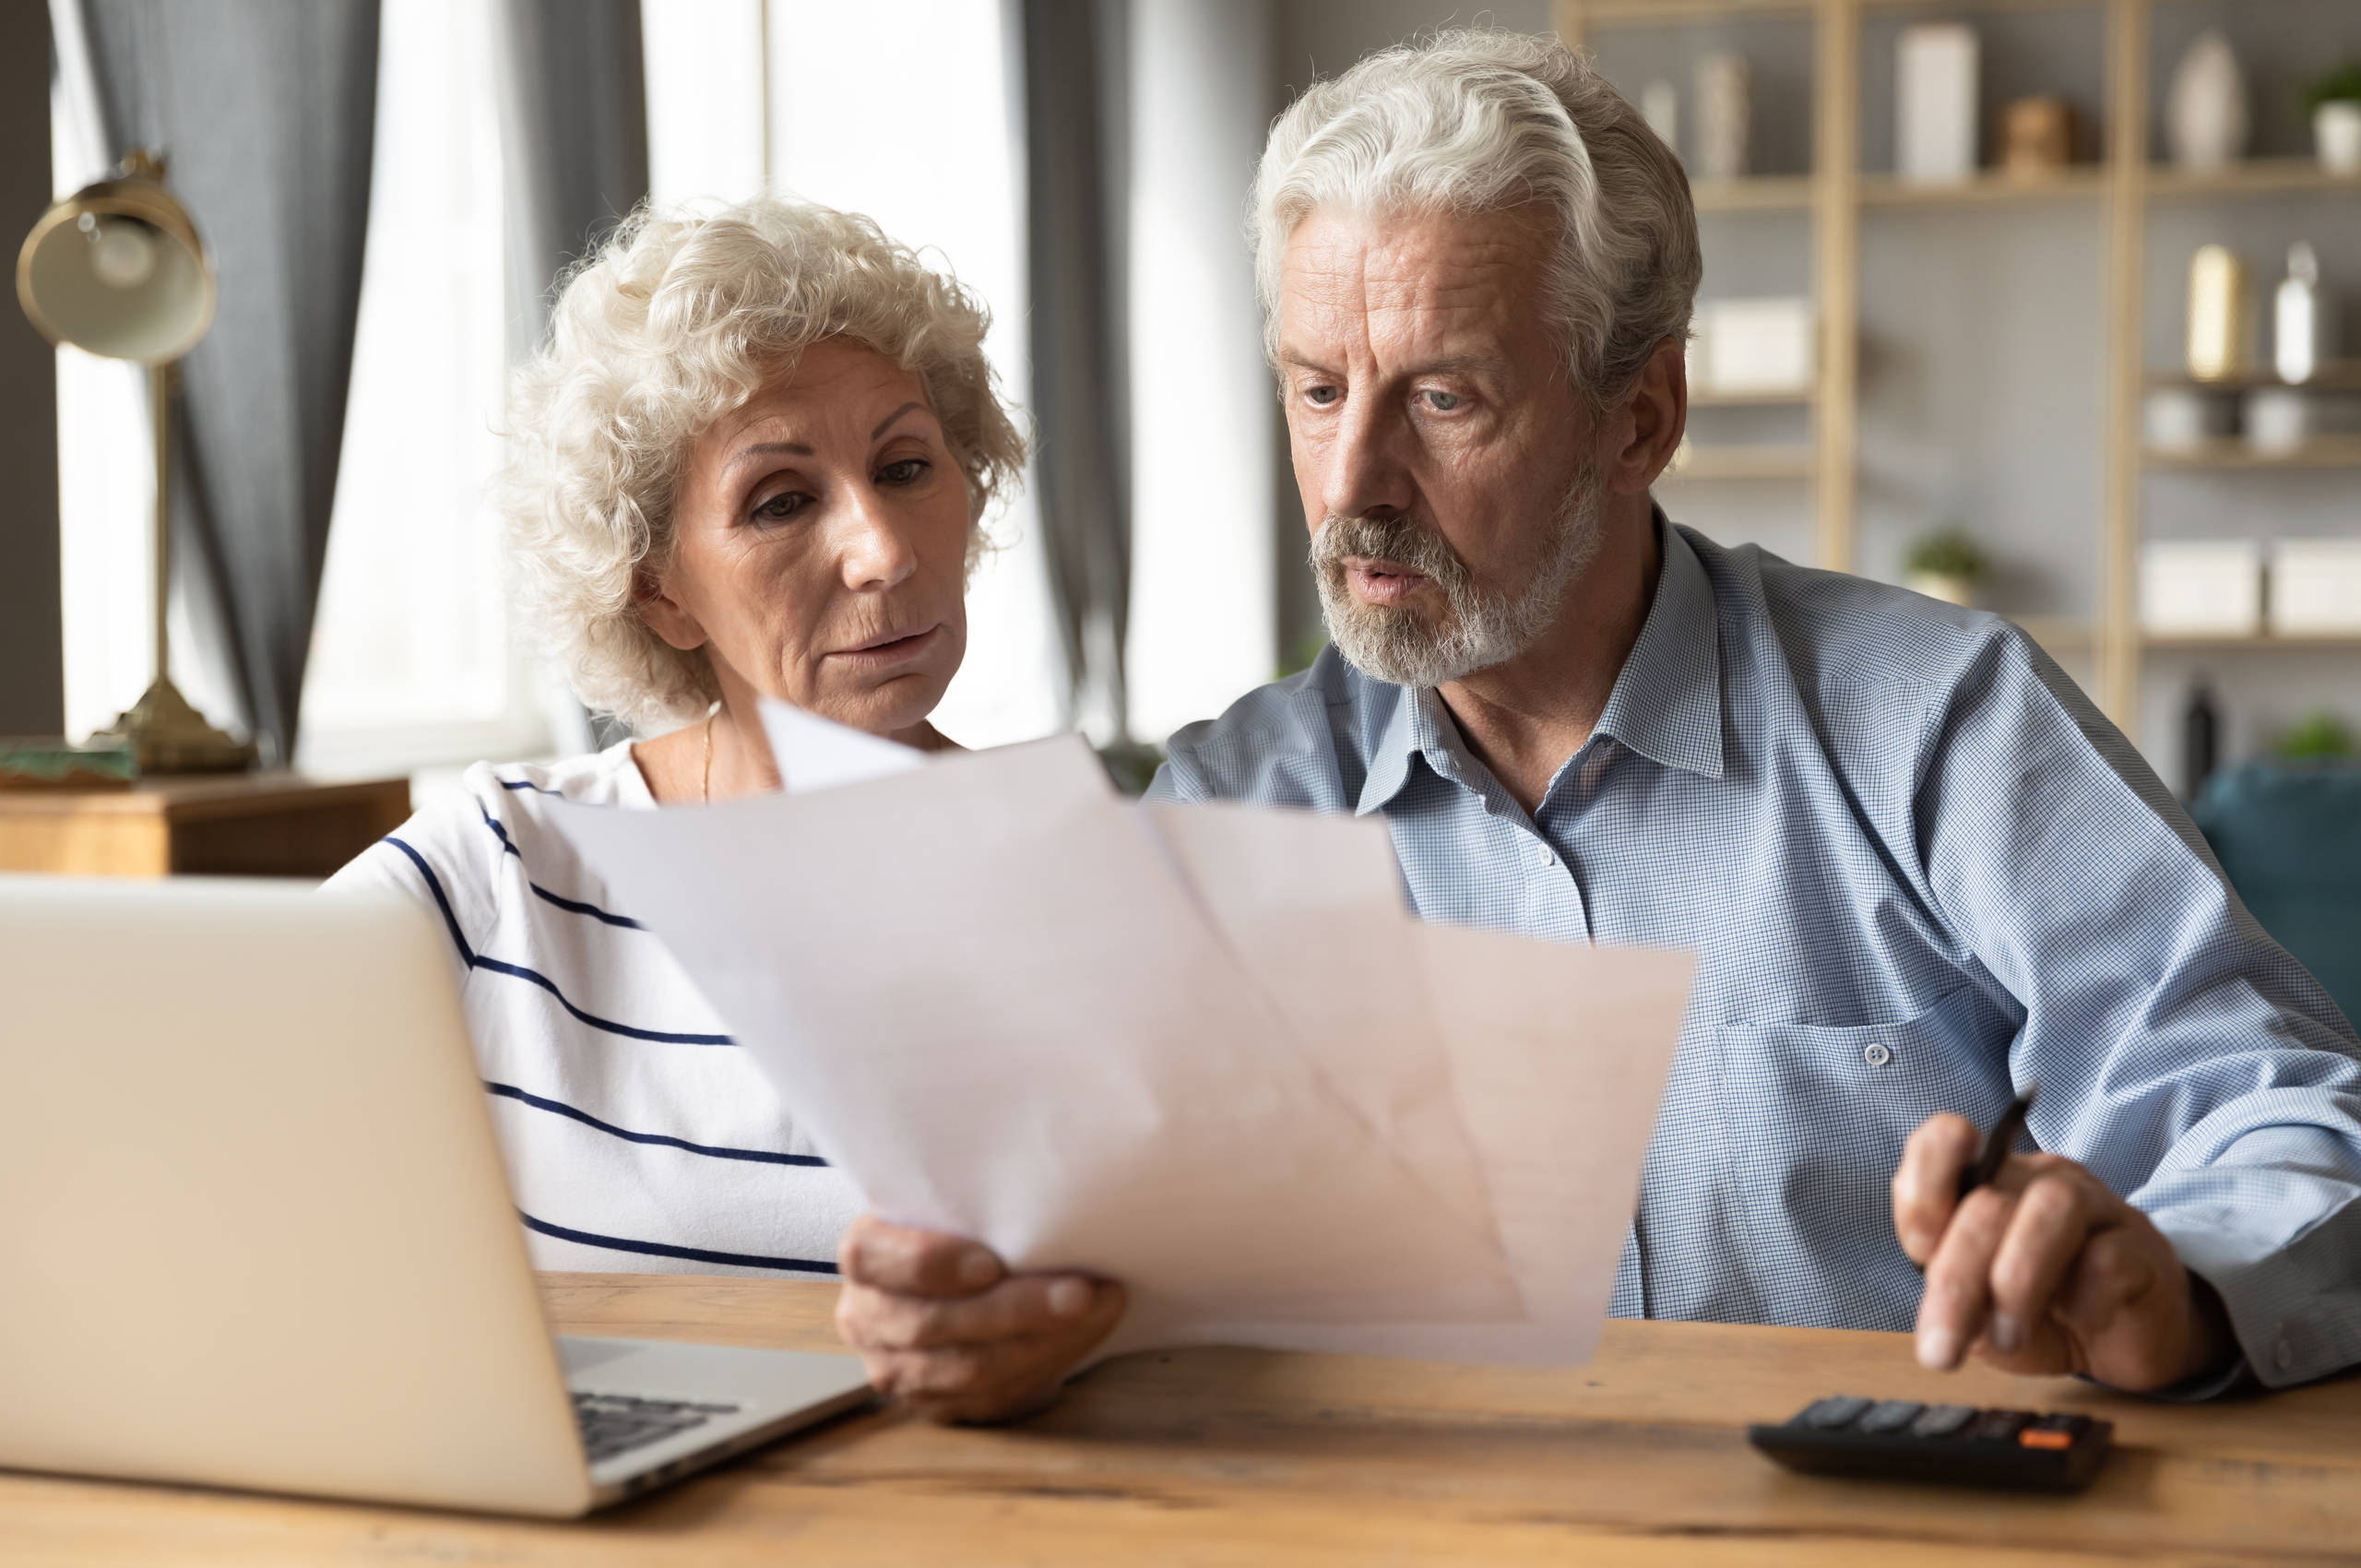 older couple looking serious reading financial documents and using calculator